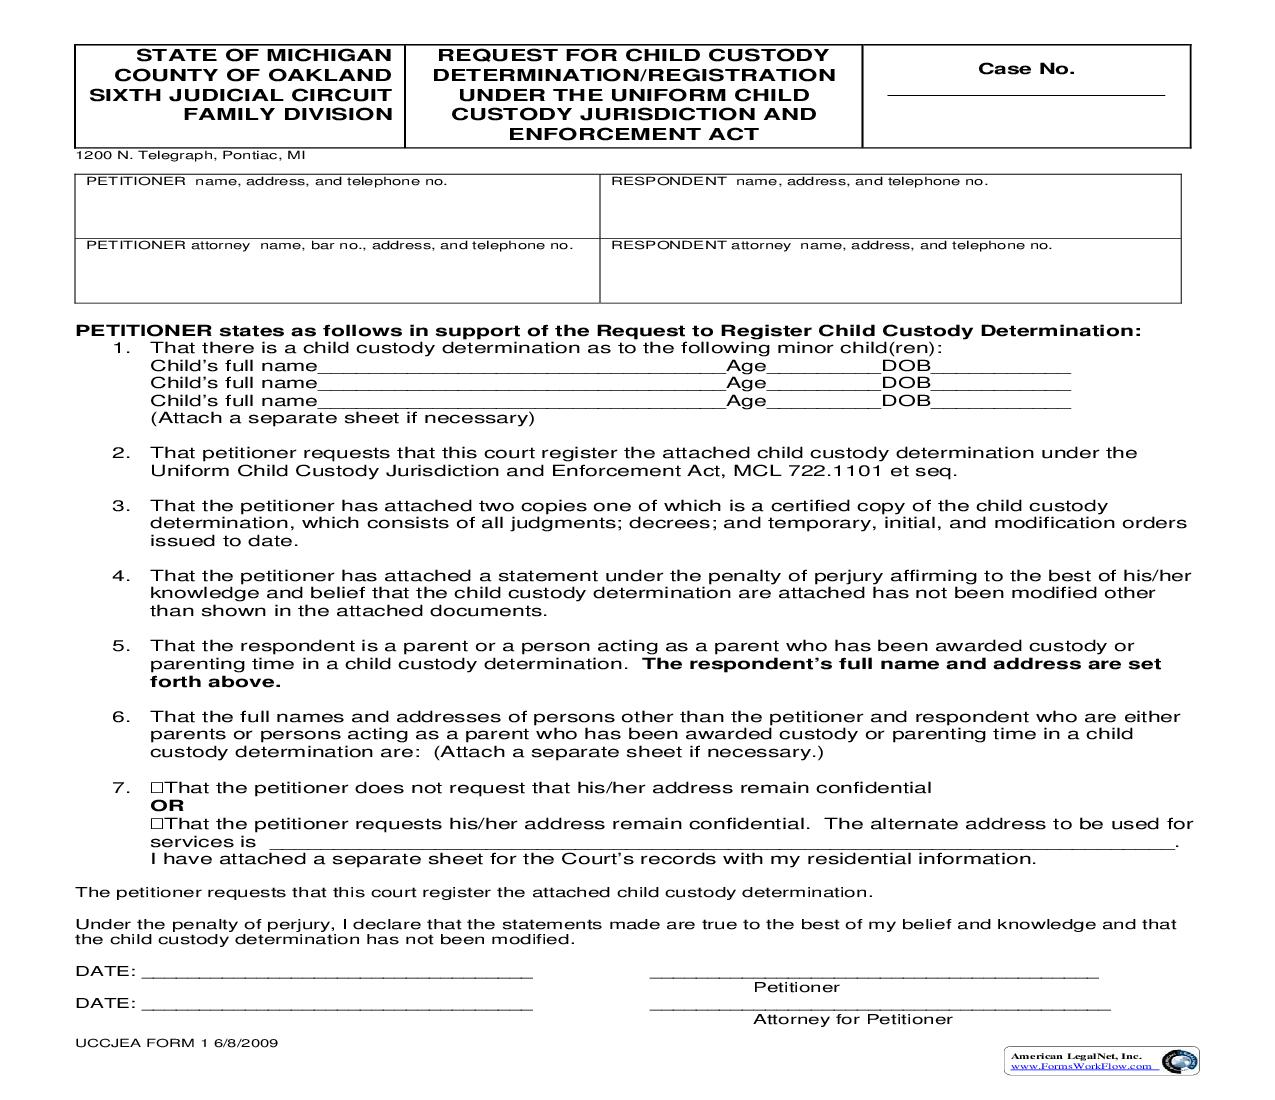 Request For Child Custody Determination Registration Under The Uniform Child Custody Jurisdiction And Enforcement Act | Pdf Fpdf Doc Docx | Michigan